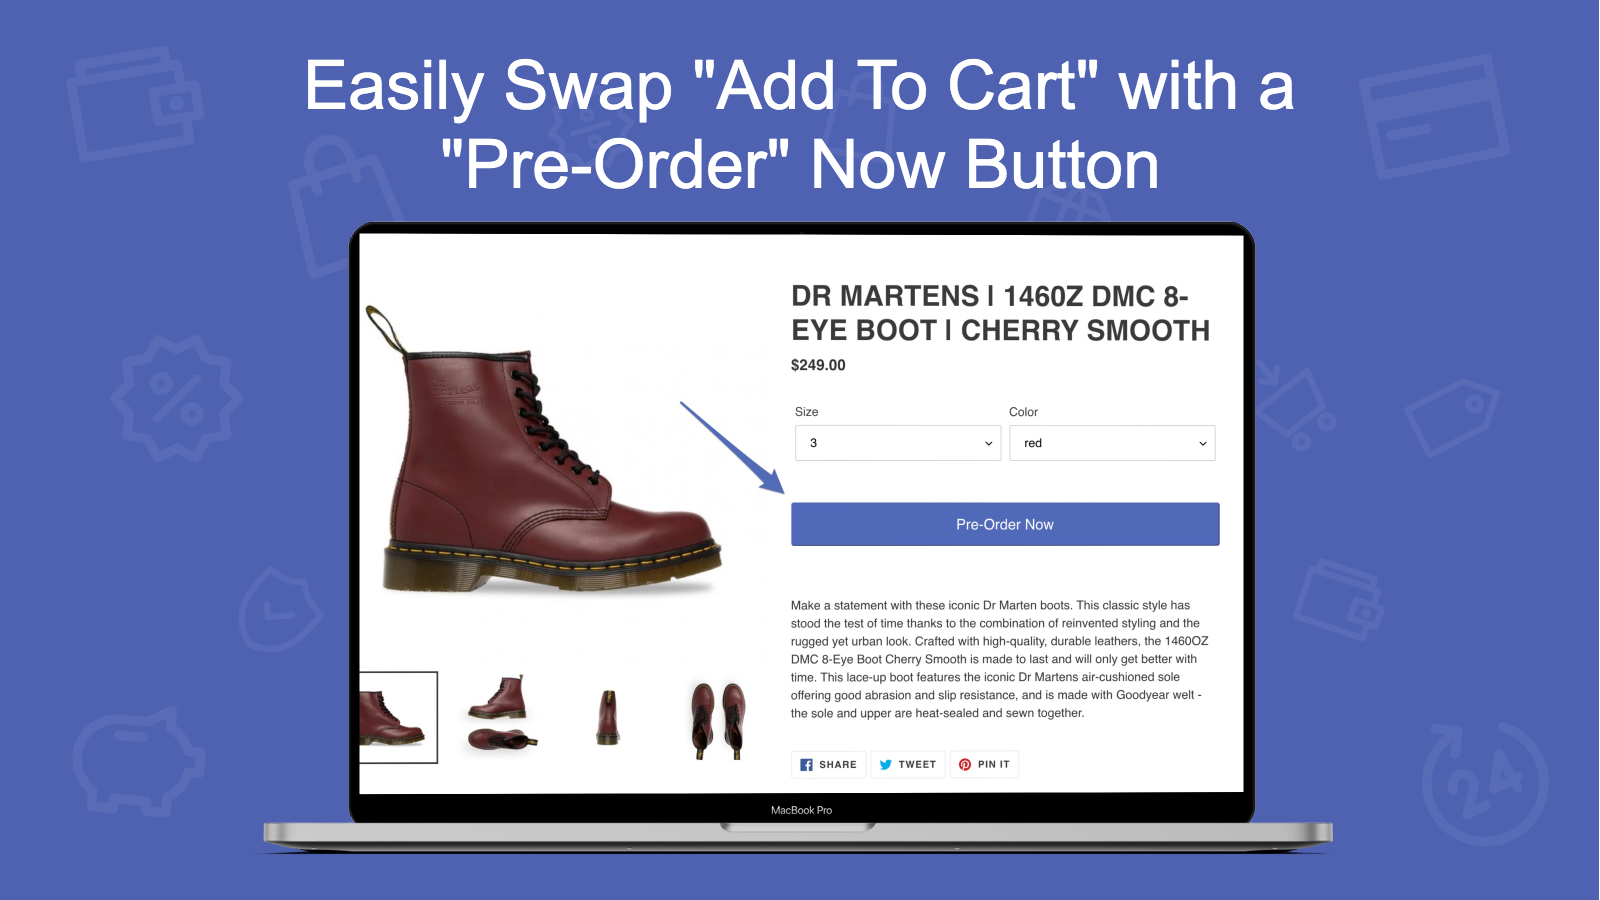 Preorder Boss Swap with Pre-order button for out of stock items